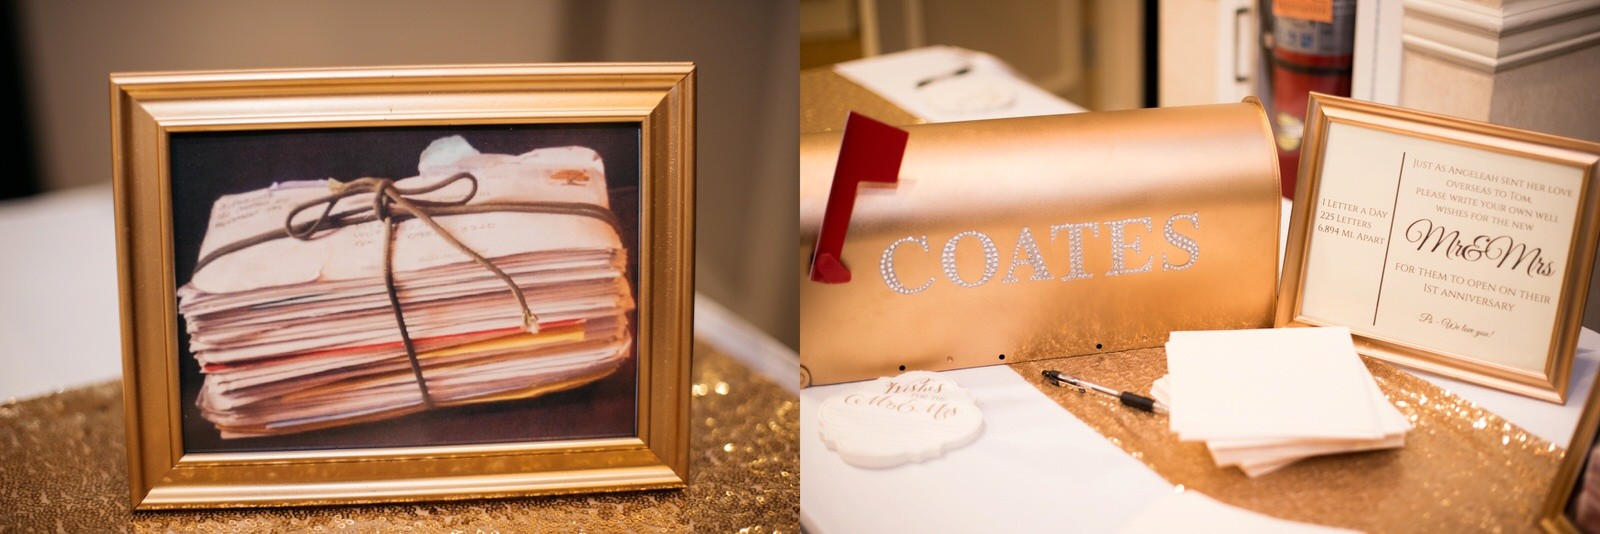 hilton_garden_inn_southpointe_pittsburgh_weddings_4.jpg